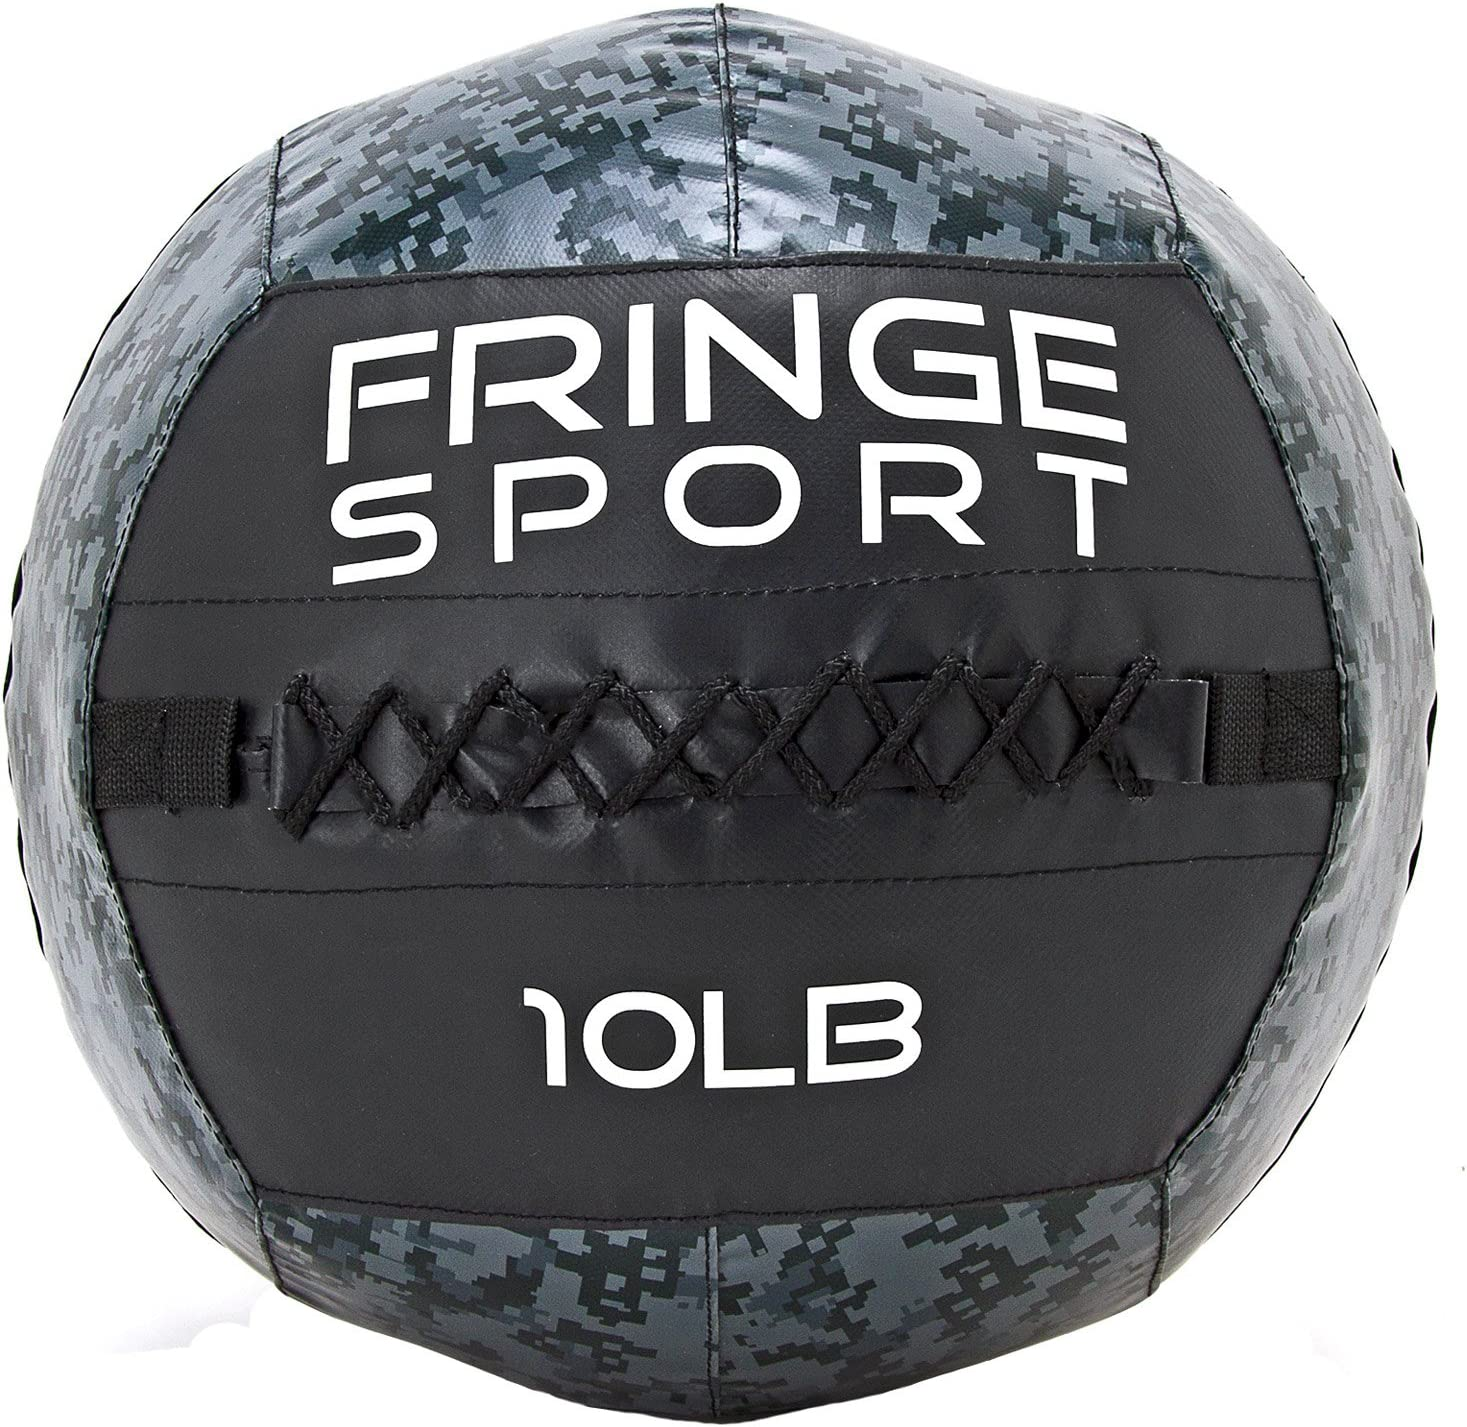 Fringe Sport Digital Camo Medicine Ball Extra Durable Weighted Ball for Strength Conditioning WODs, Plyometric Core Training, Slamballs, Wallballs, Partner Tosses, and Cardio Workouts